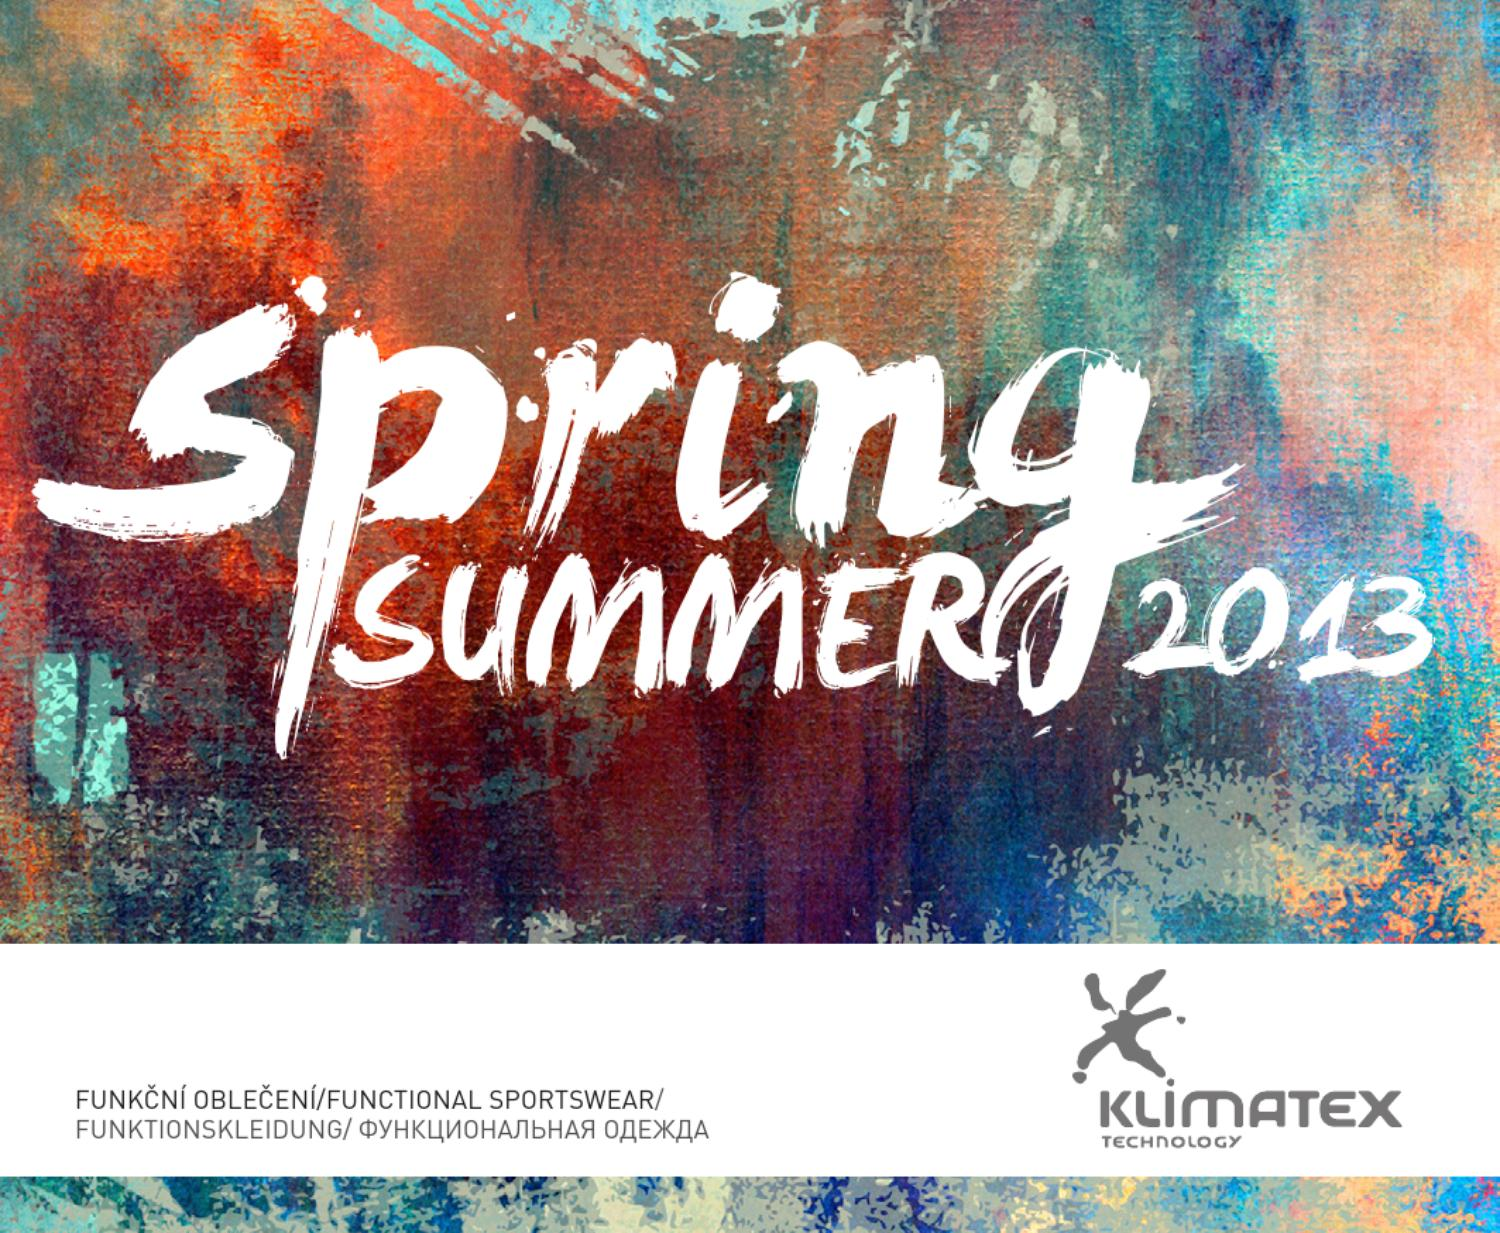 Klimatex Spring Summer 2013 by Klimatex - issuu 4fe5548e7e